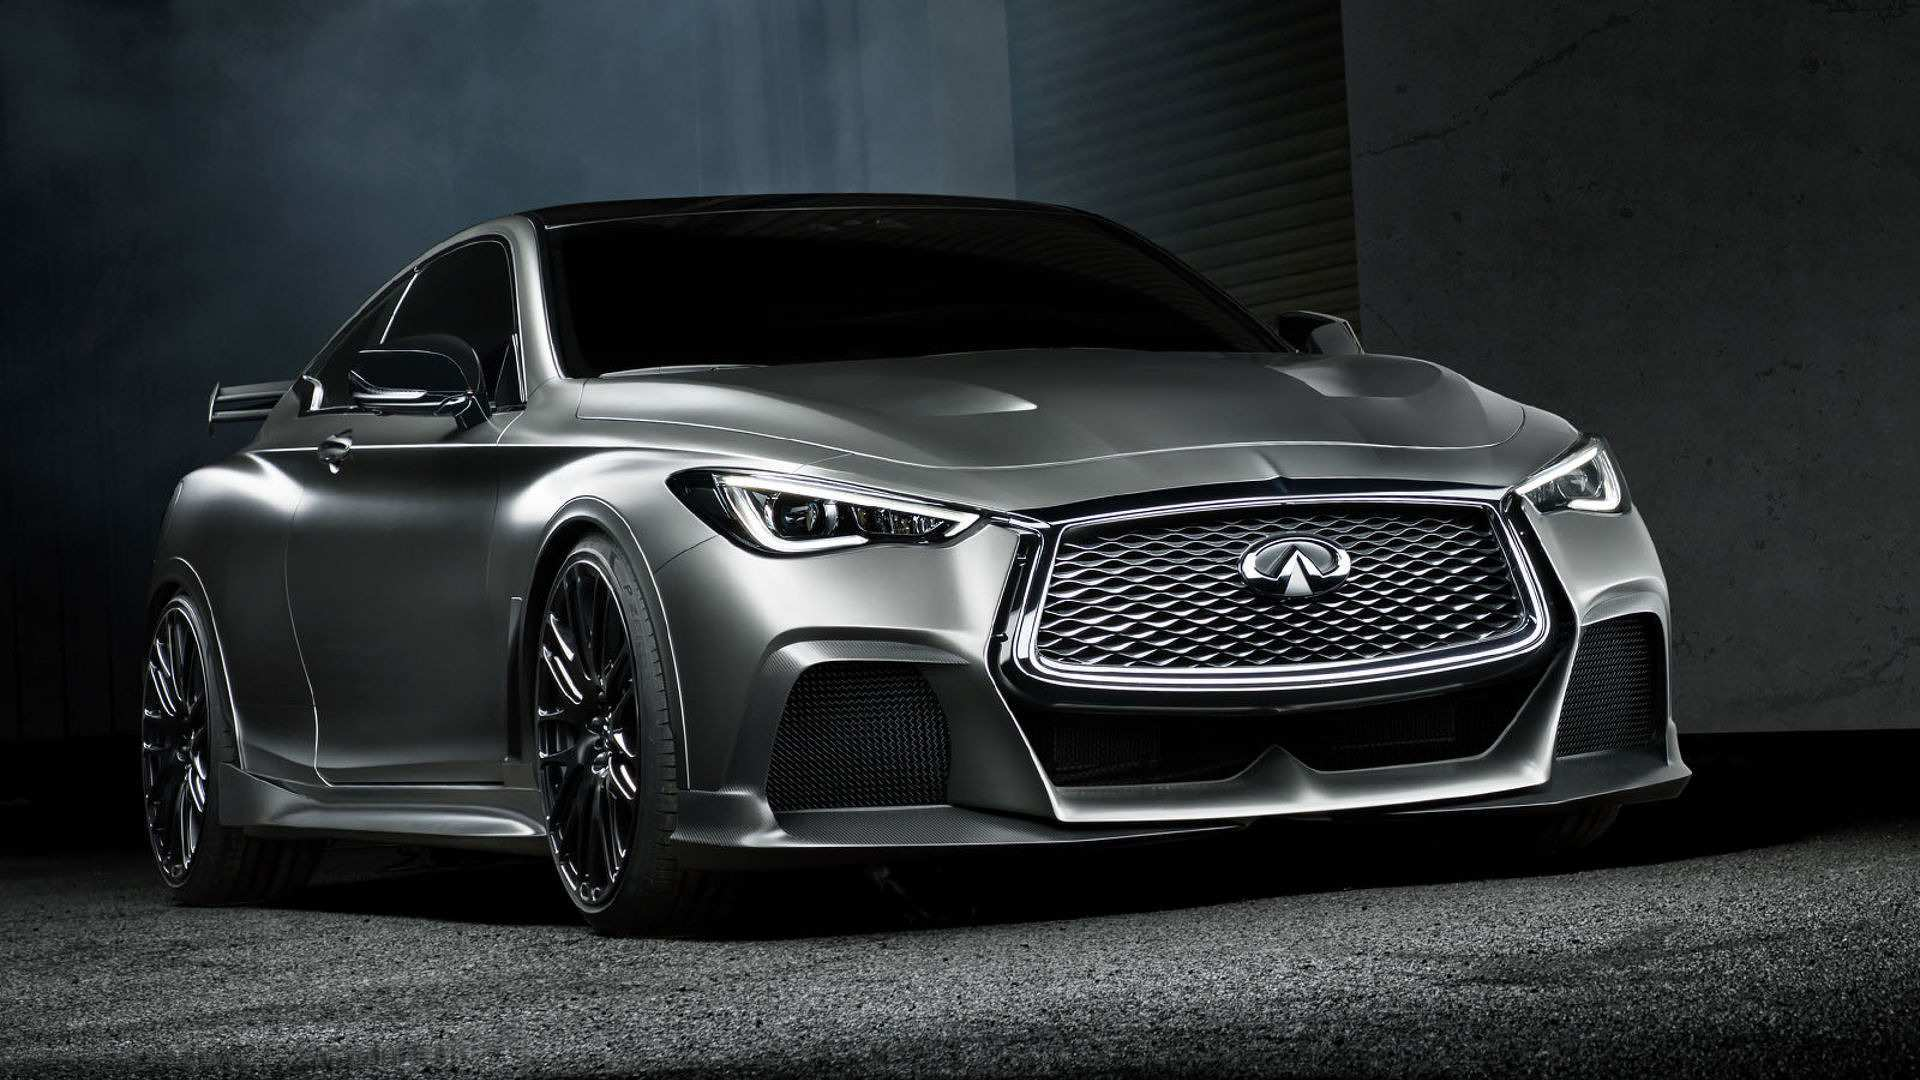 19 Concept of 2020 Infiniti Q60 Price and Review by 2020 Infiniti Q60